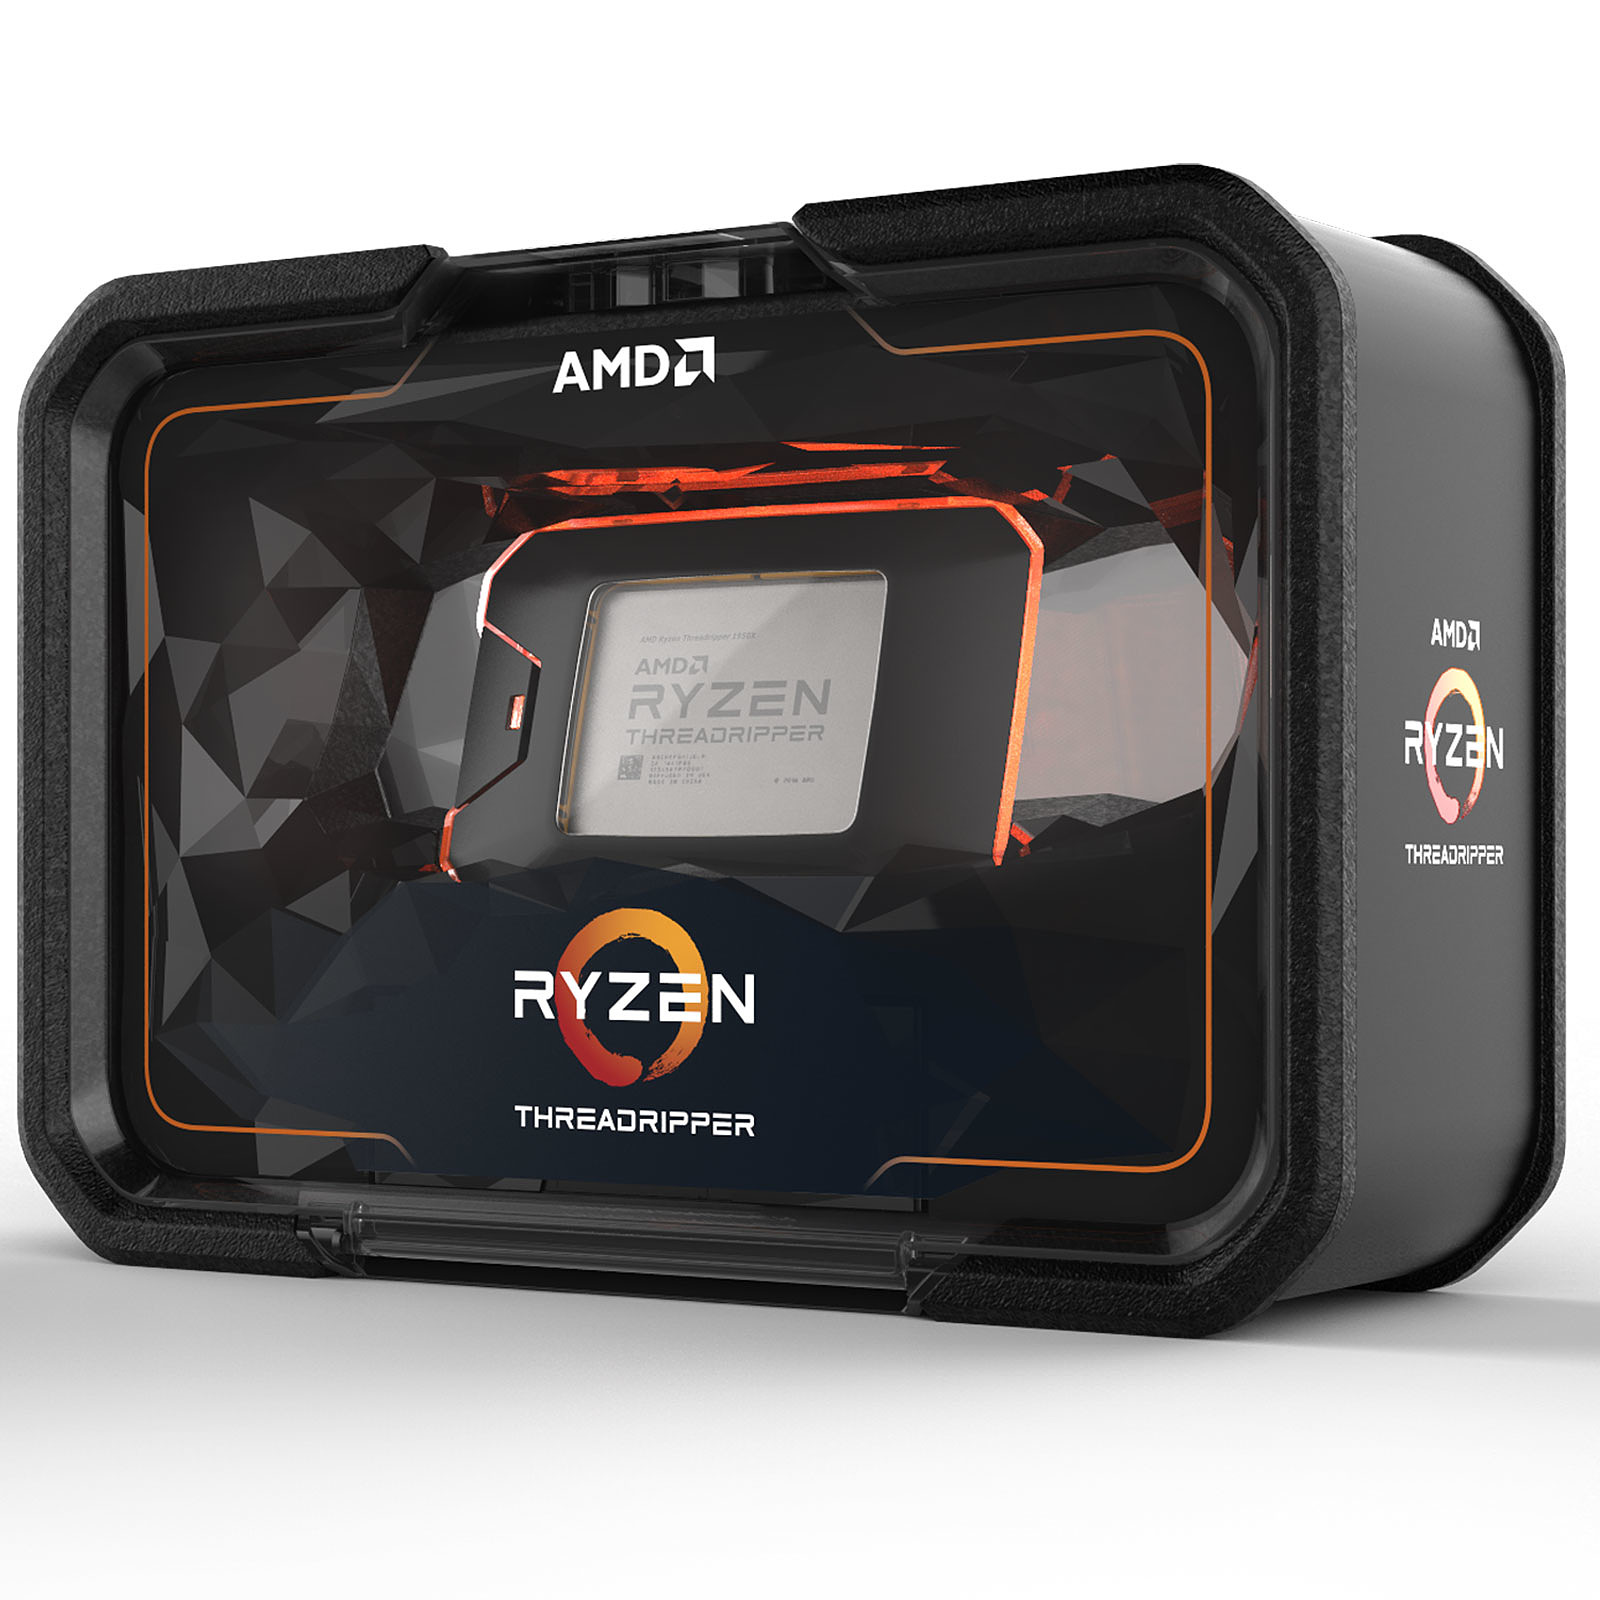 AMD Ryzen Threadripper 2990WX (3 GHz)